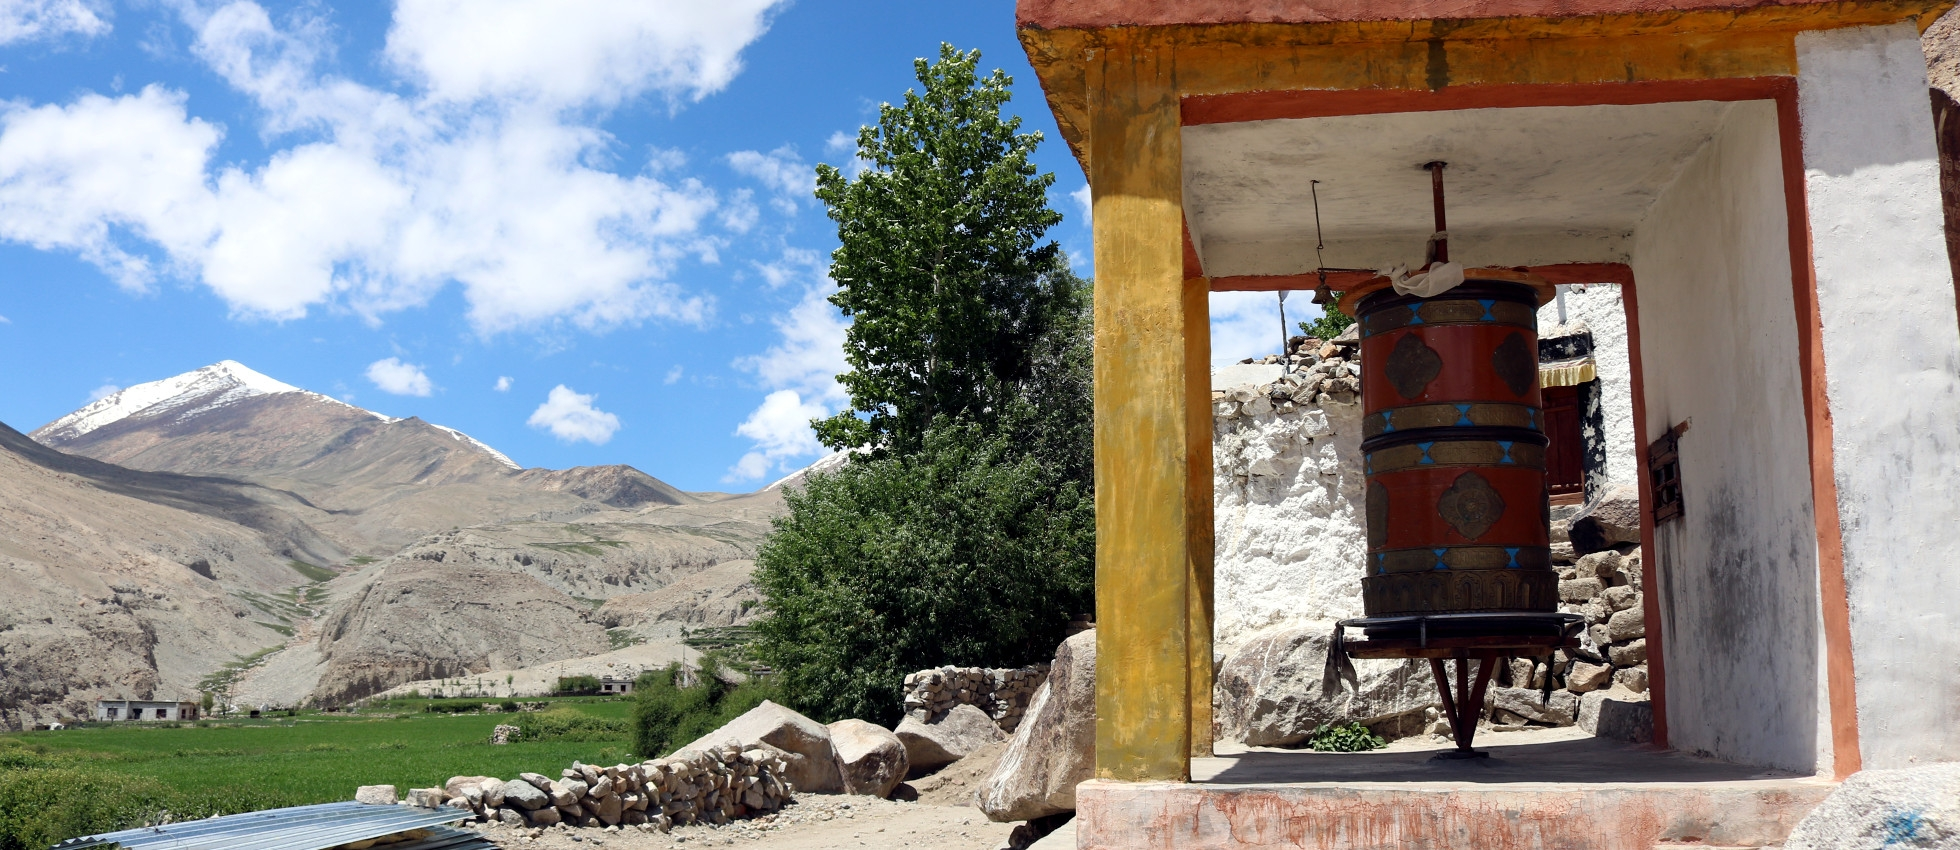 A prayer wheel in Ladakh, India